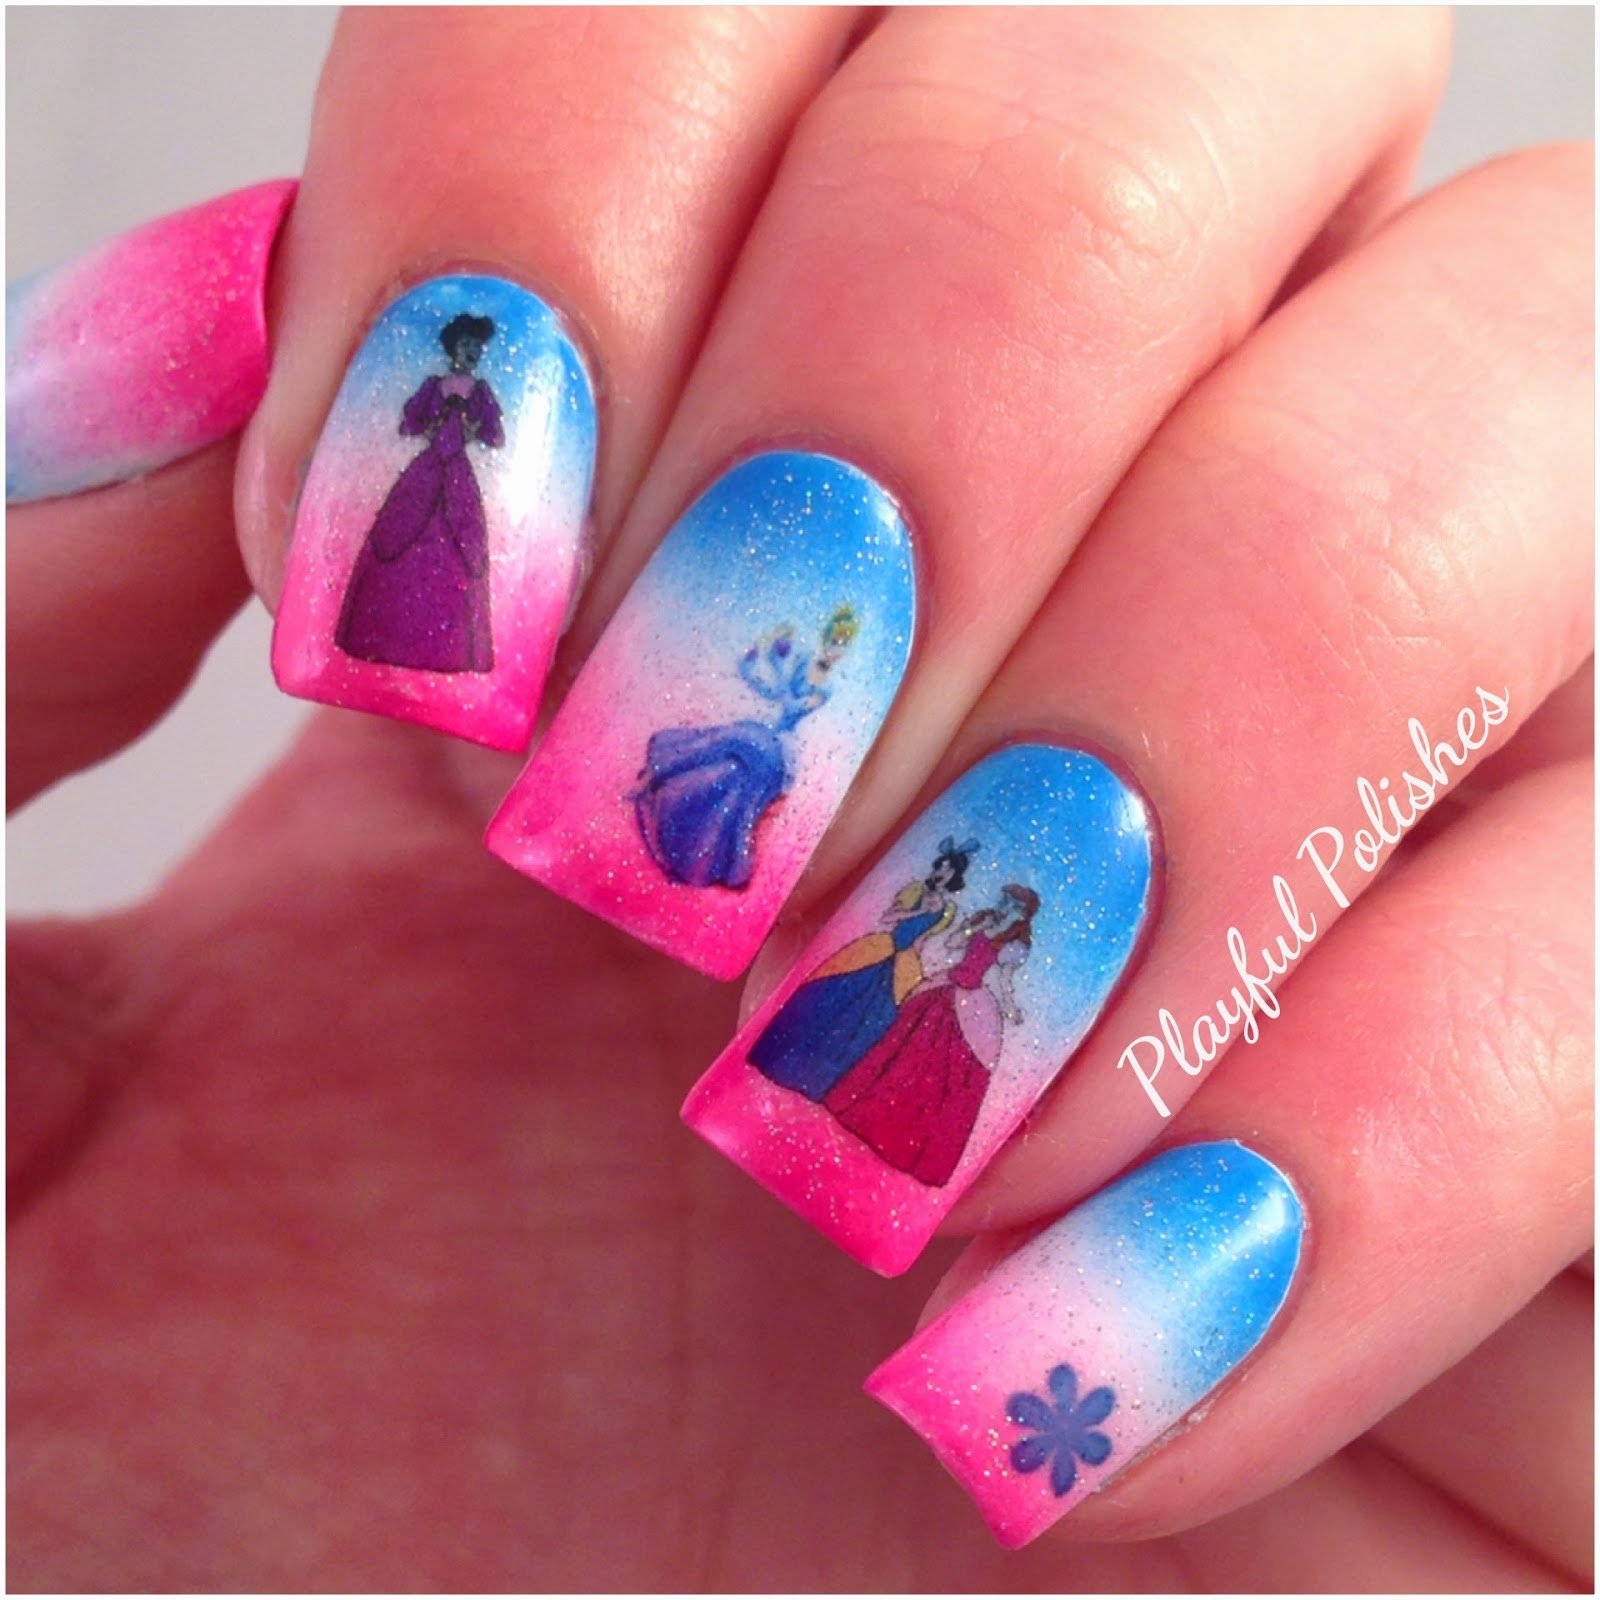 Playful Polishes: 31 DAY CHALLENGE 2014 ROUND UP!